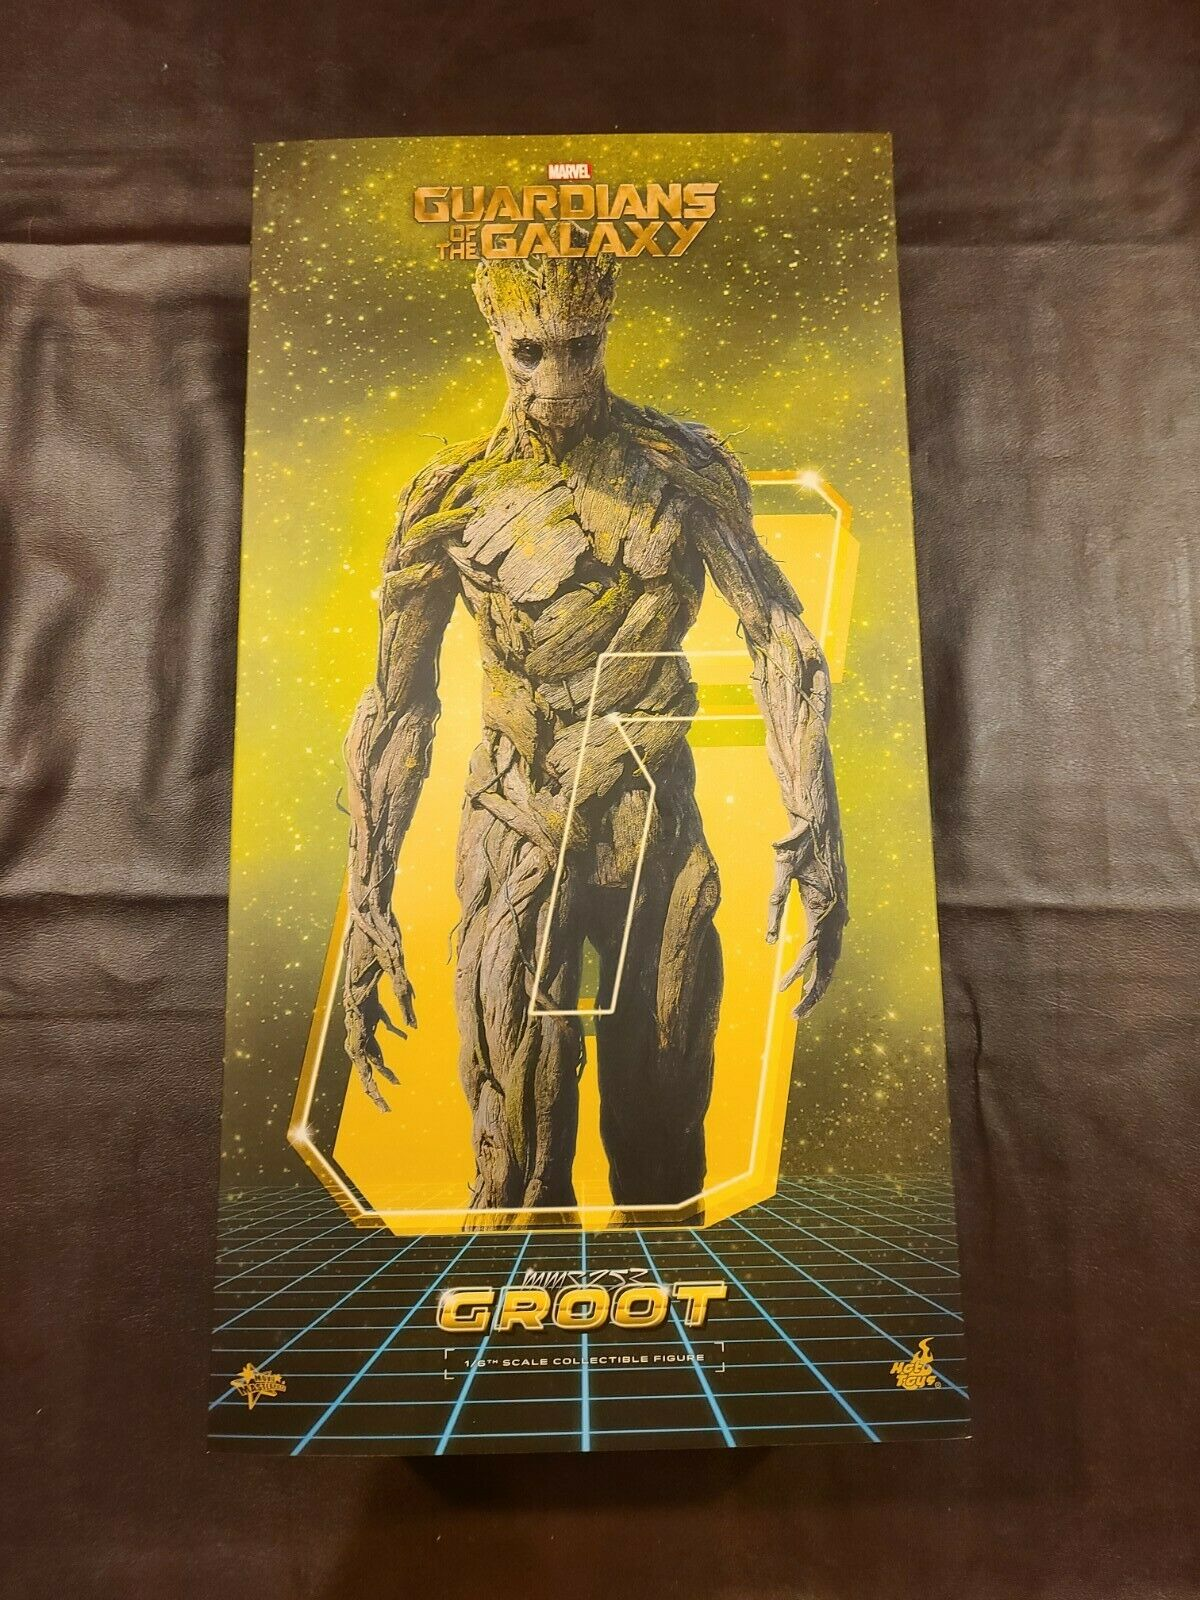 HOT TOYS 1/6 GUARDIANS OF THE GALAXY GROOT FIGURE MARVEL on eBay thumbnail